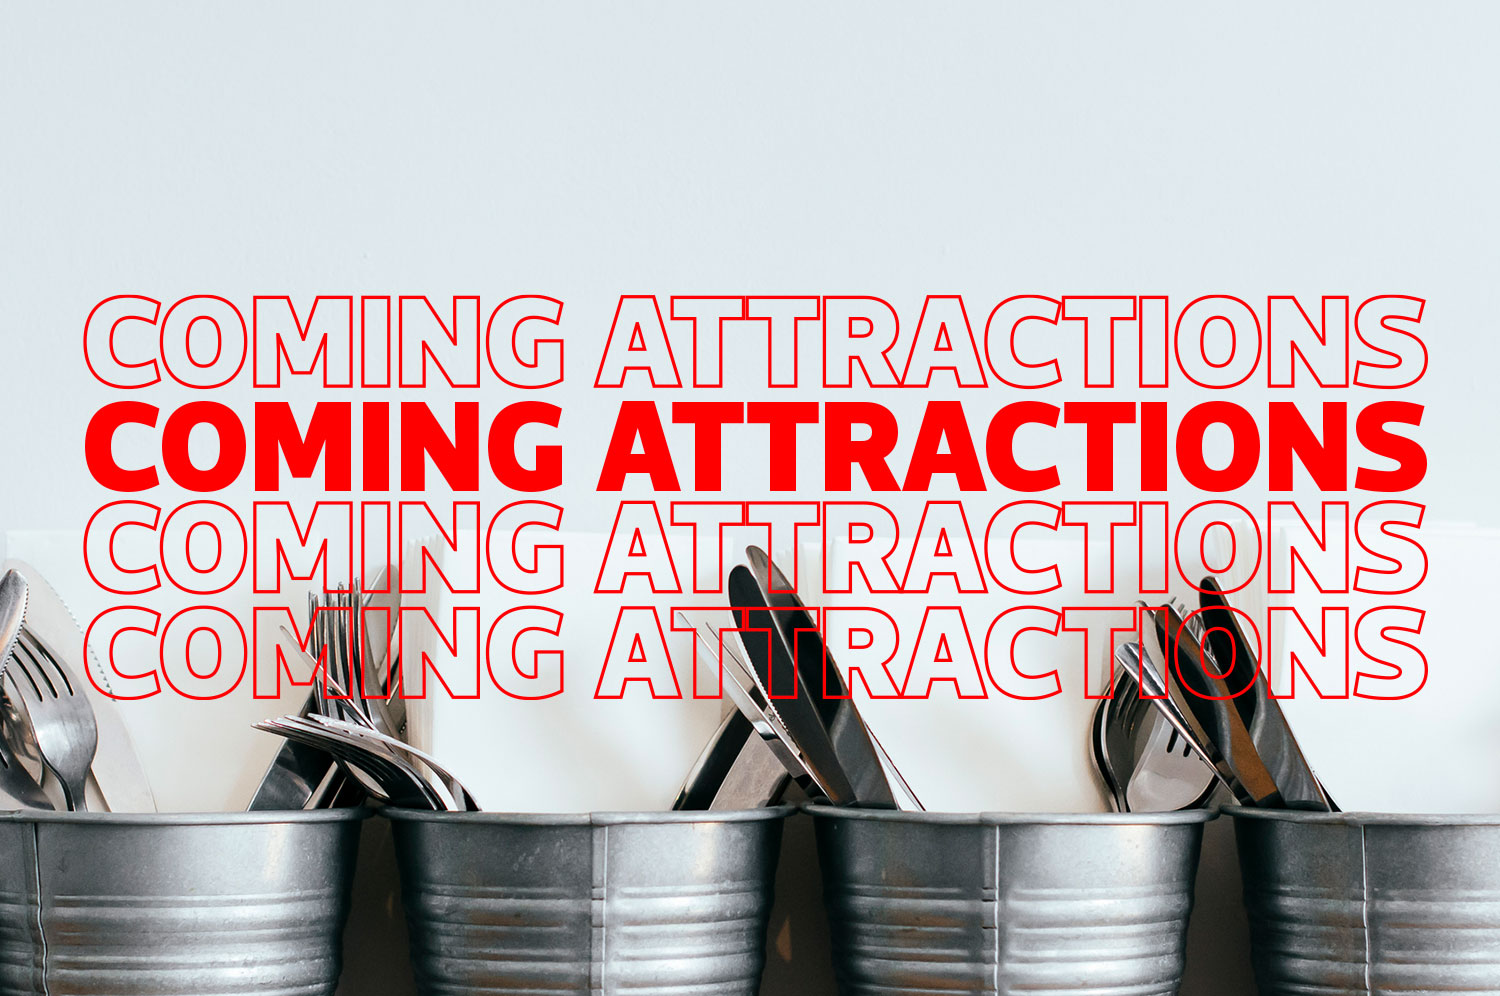 Four metal buckets with utensils against a white wall. Superimposed on the image is text that reads: Coming Attractions, four times